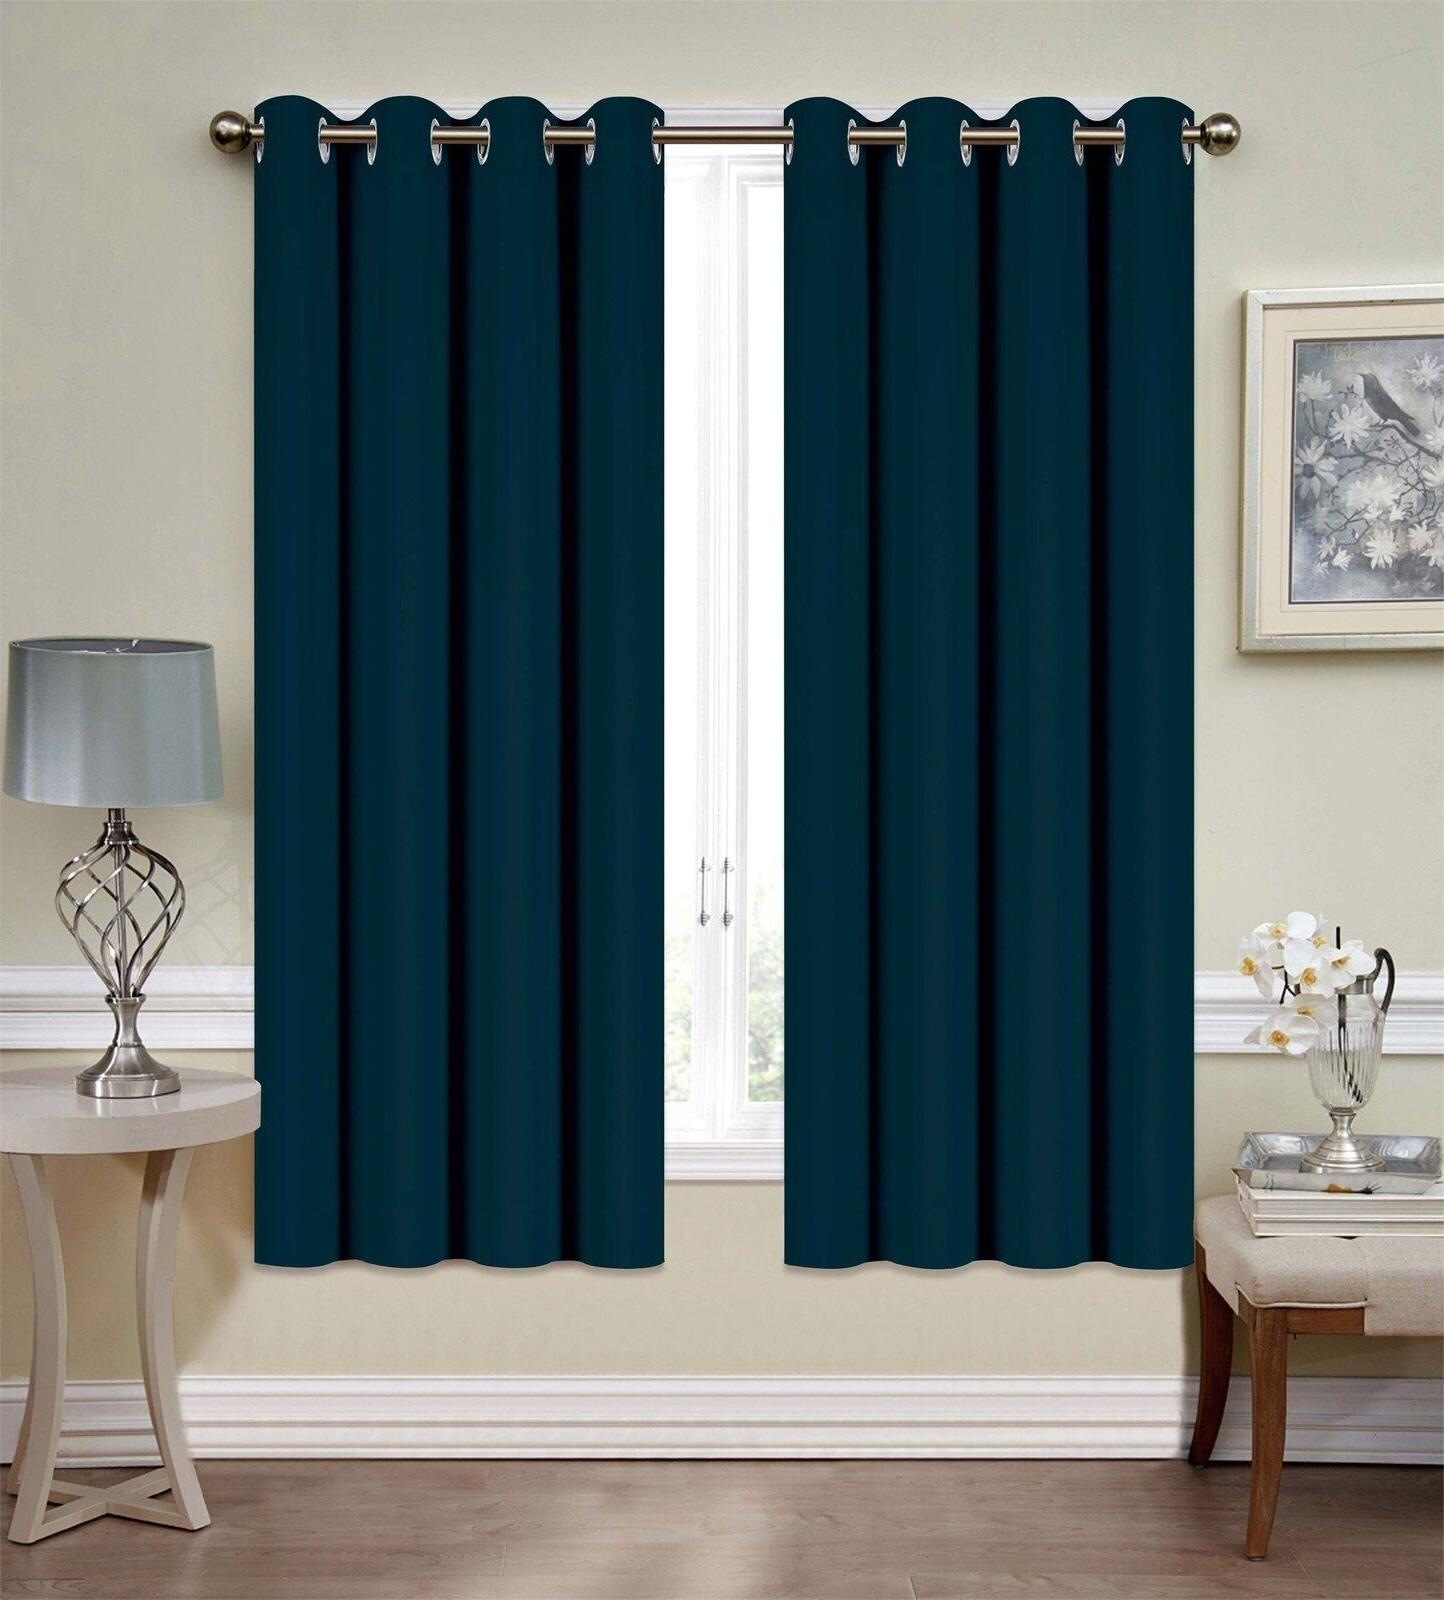 """Mellanni Blackout Curtains 52""""x63"""" Thermal Siver"""